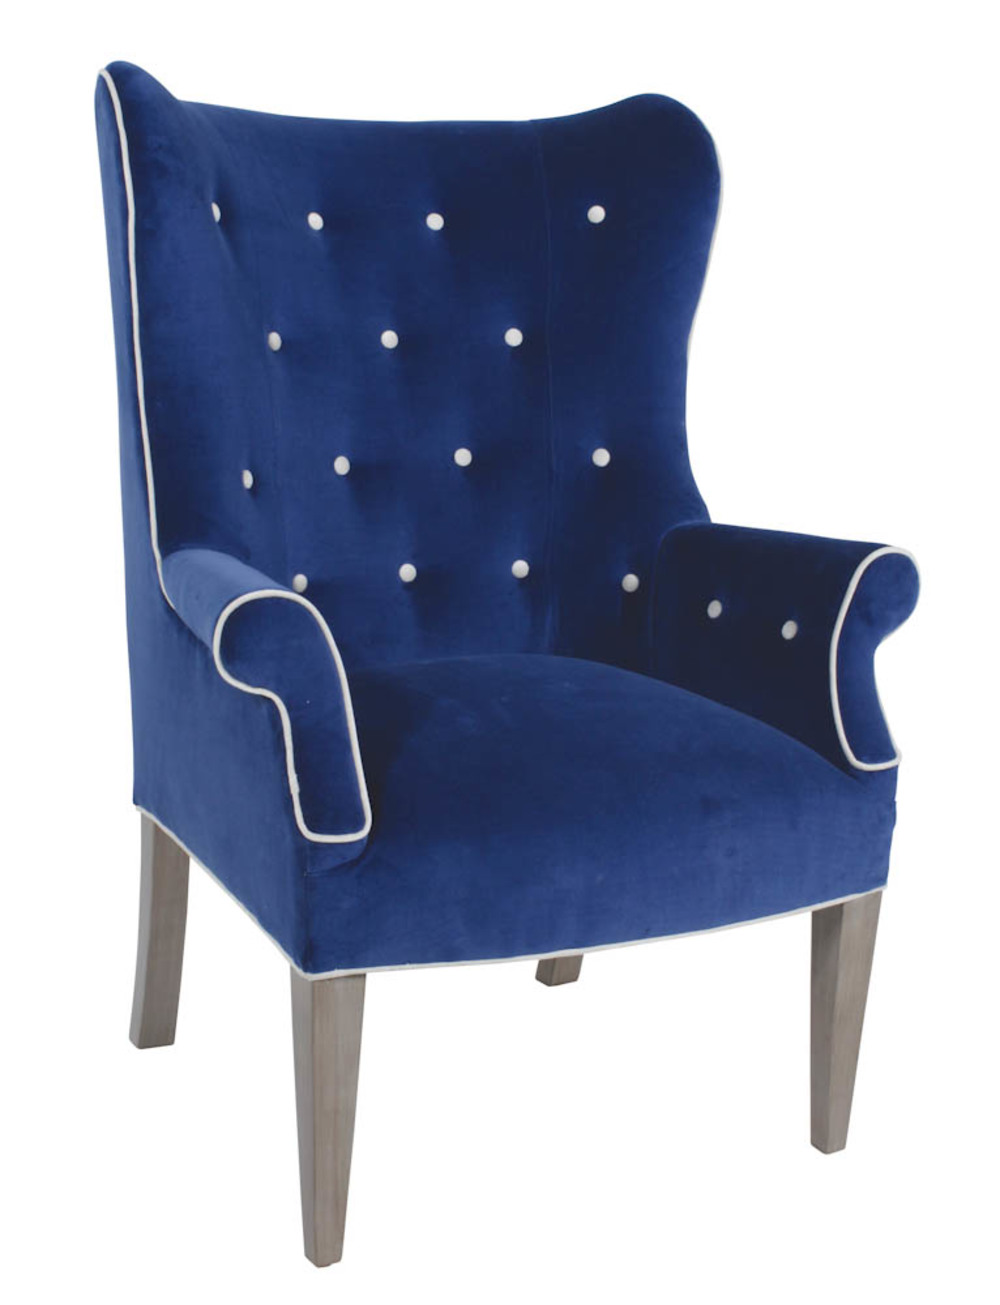 Cox Manufacturing - Wing Chair